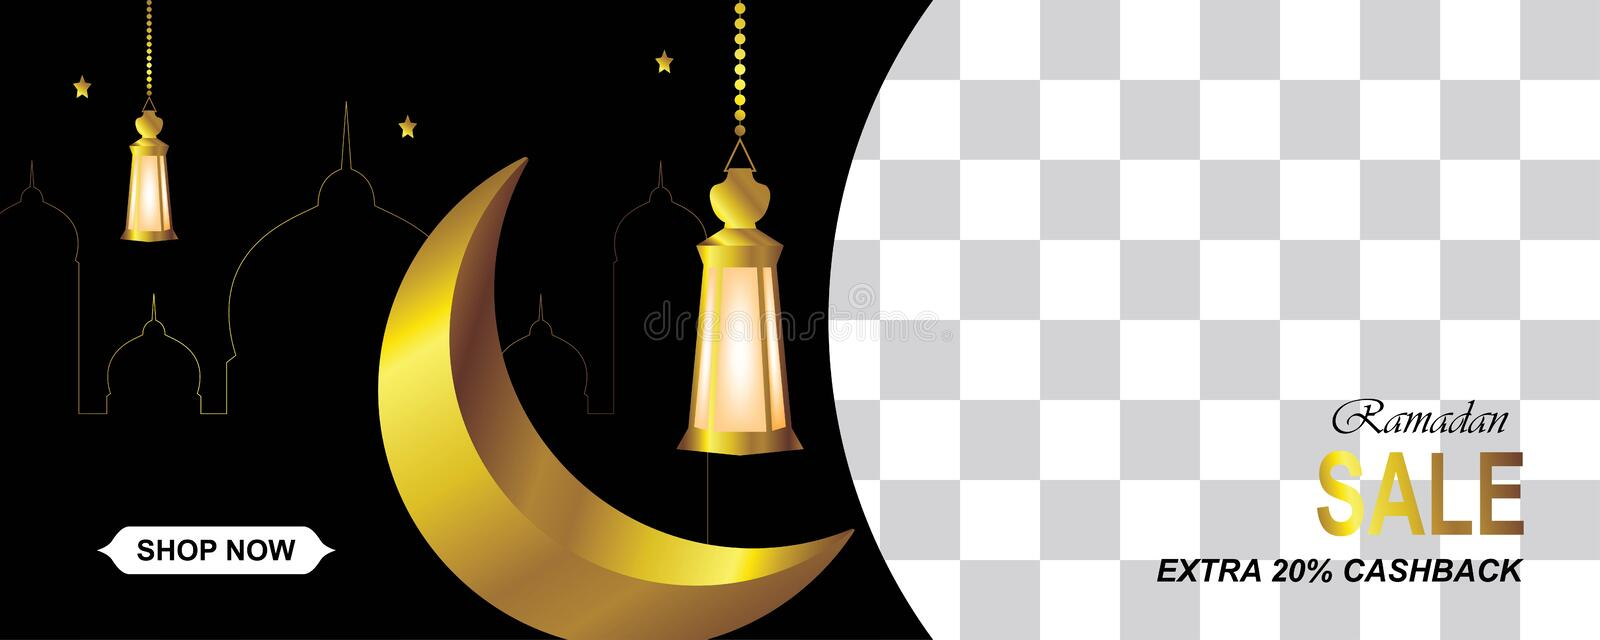 Ramadan sale horizontal with gold crescent,lanterns,mosque and stars vector illustration